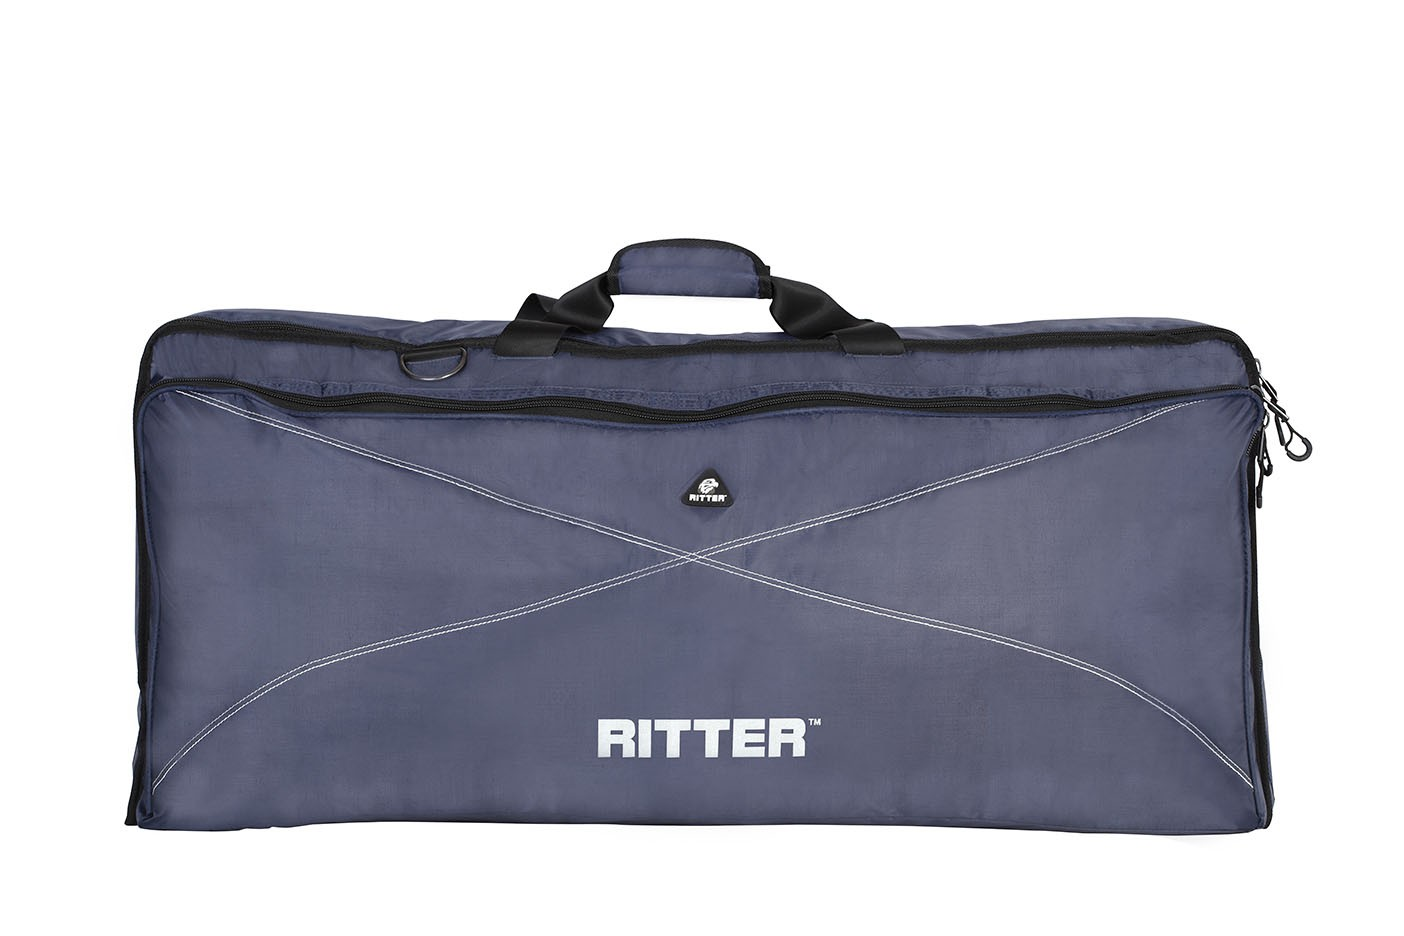 Ritter RKP2-55/BLW Keyboard Bag 1380x370x170 - Navy/Light Grey/White